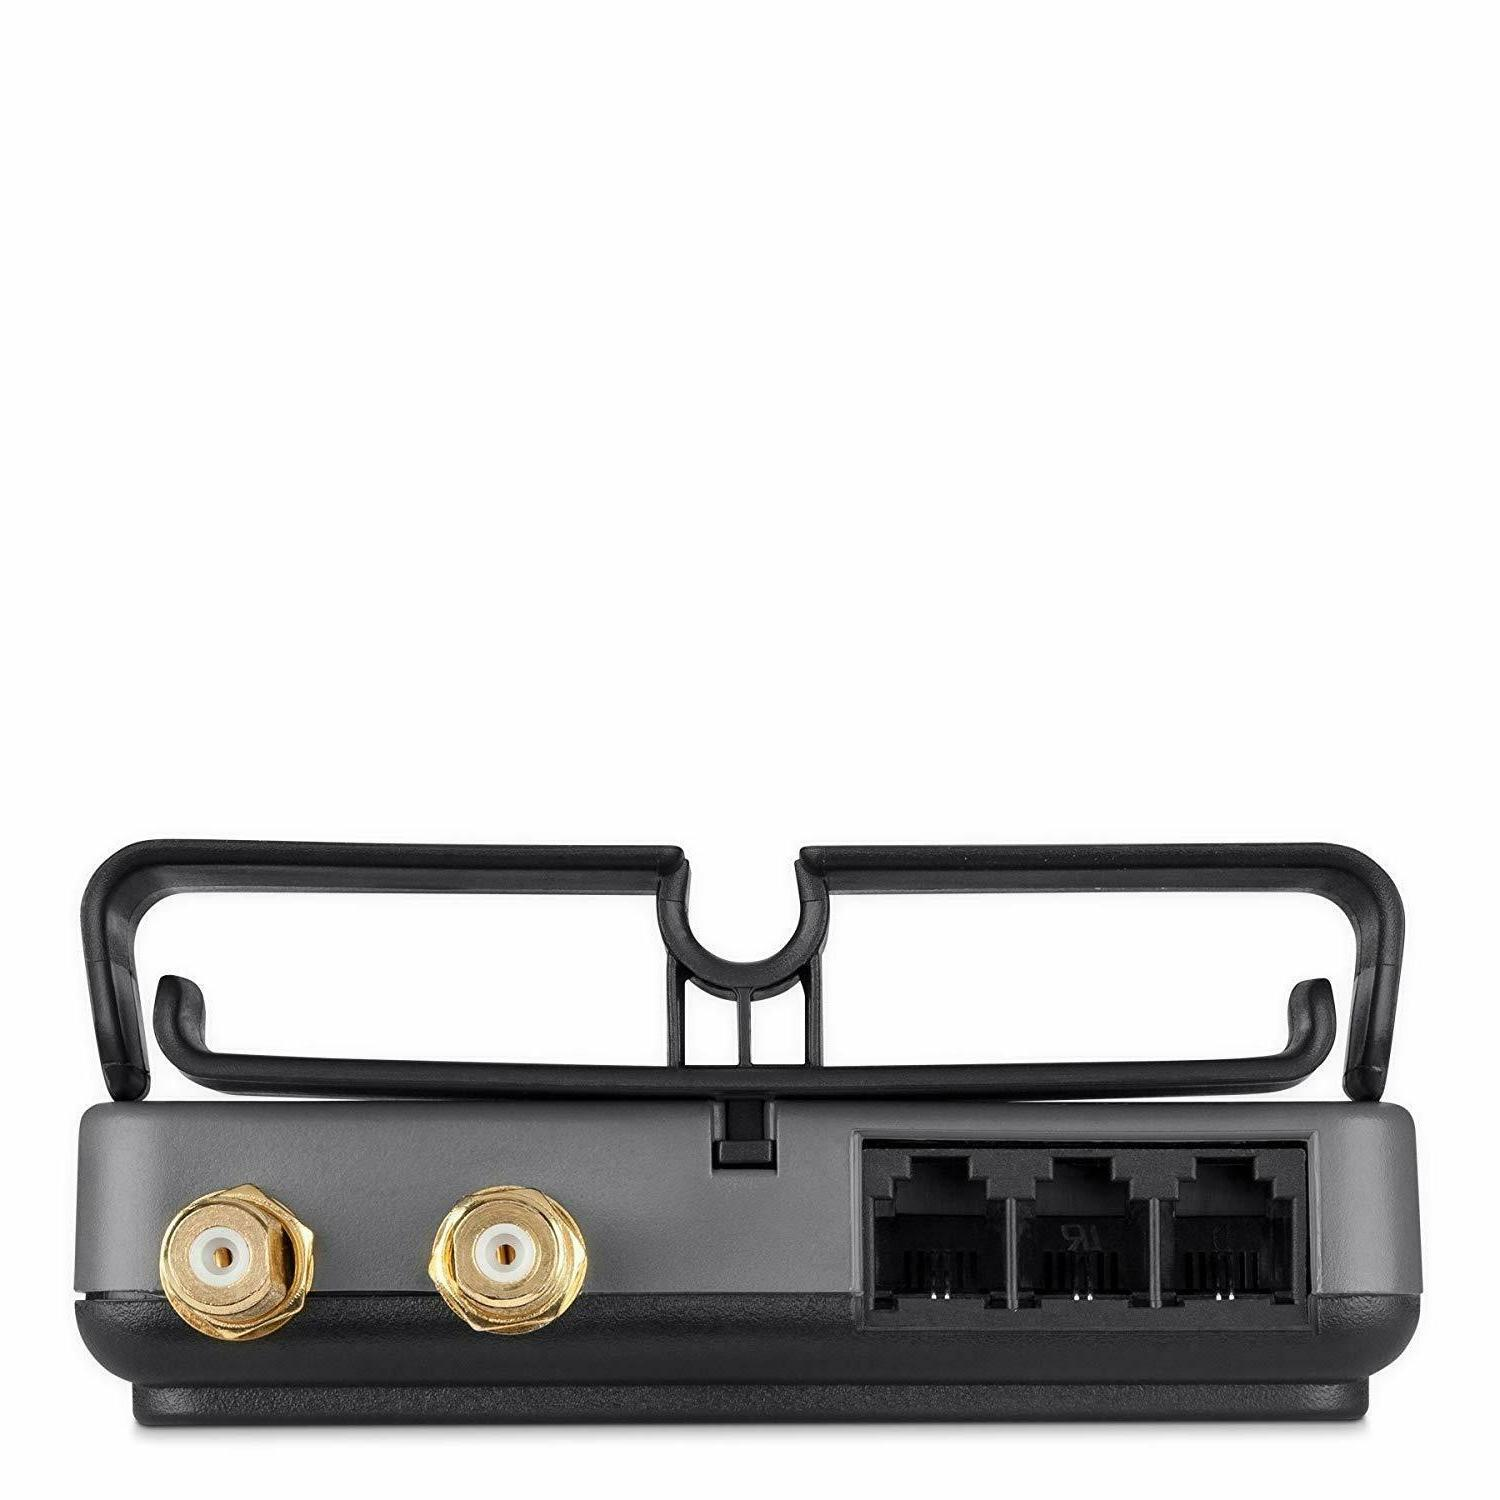 BE112230-08 12-Outlet Strip Surge Protector